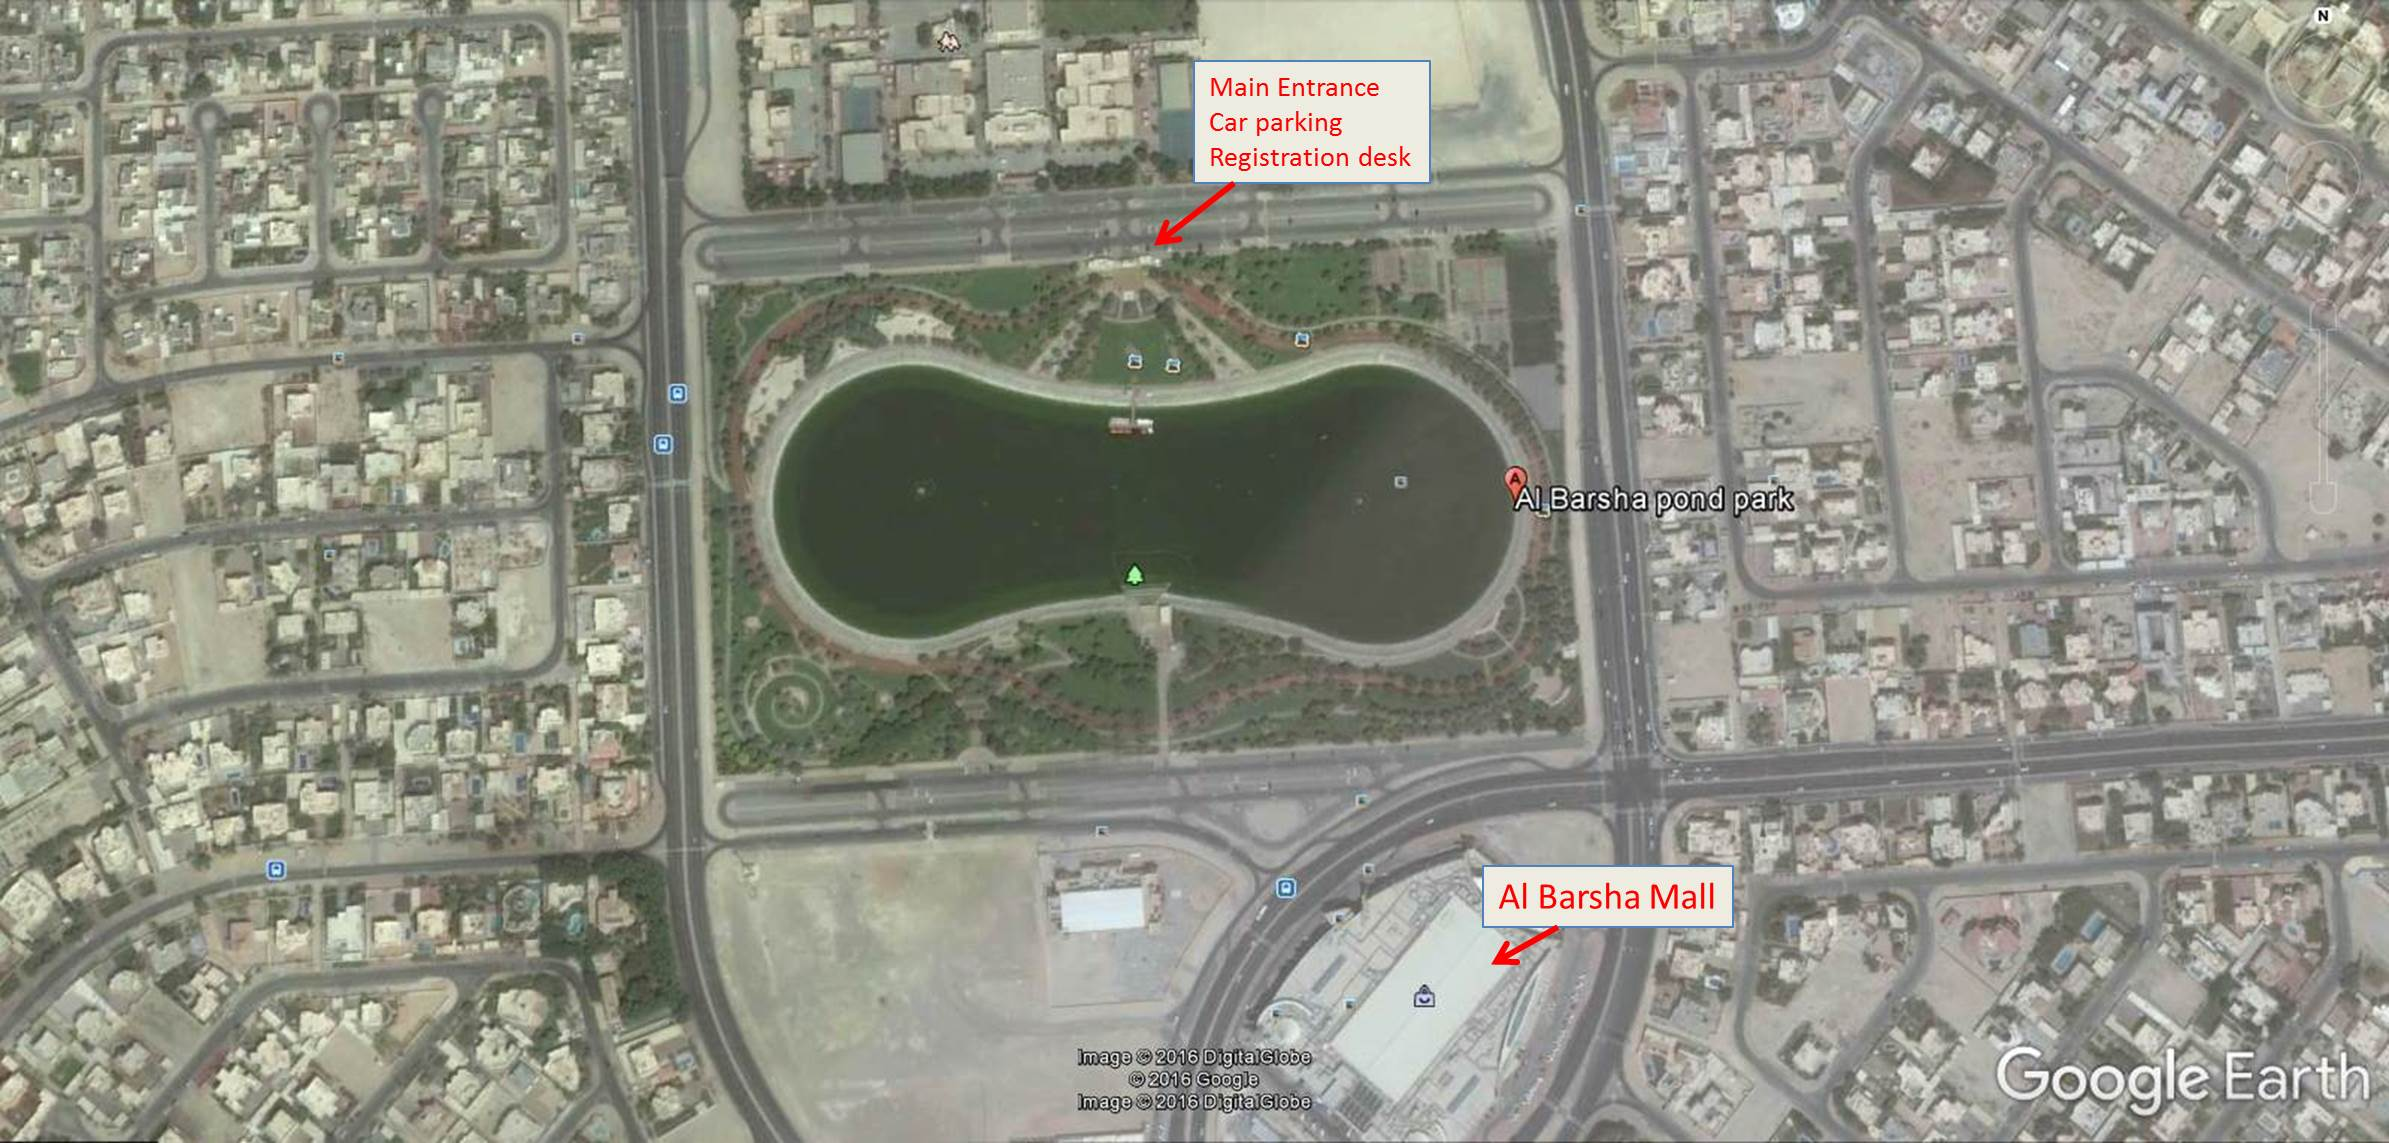 Al Barsha Pond Park _ google earth image_final.jpg